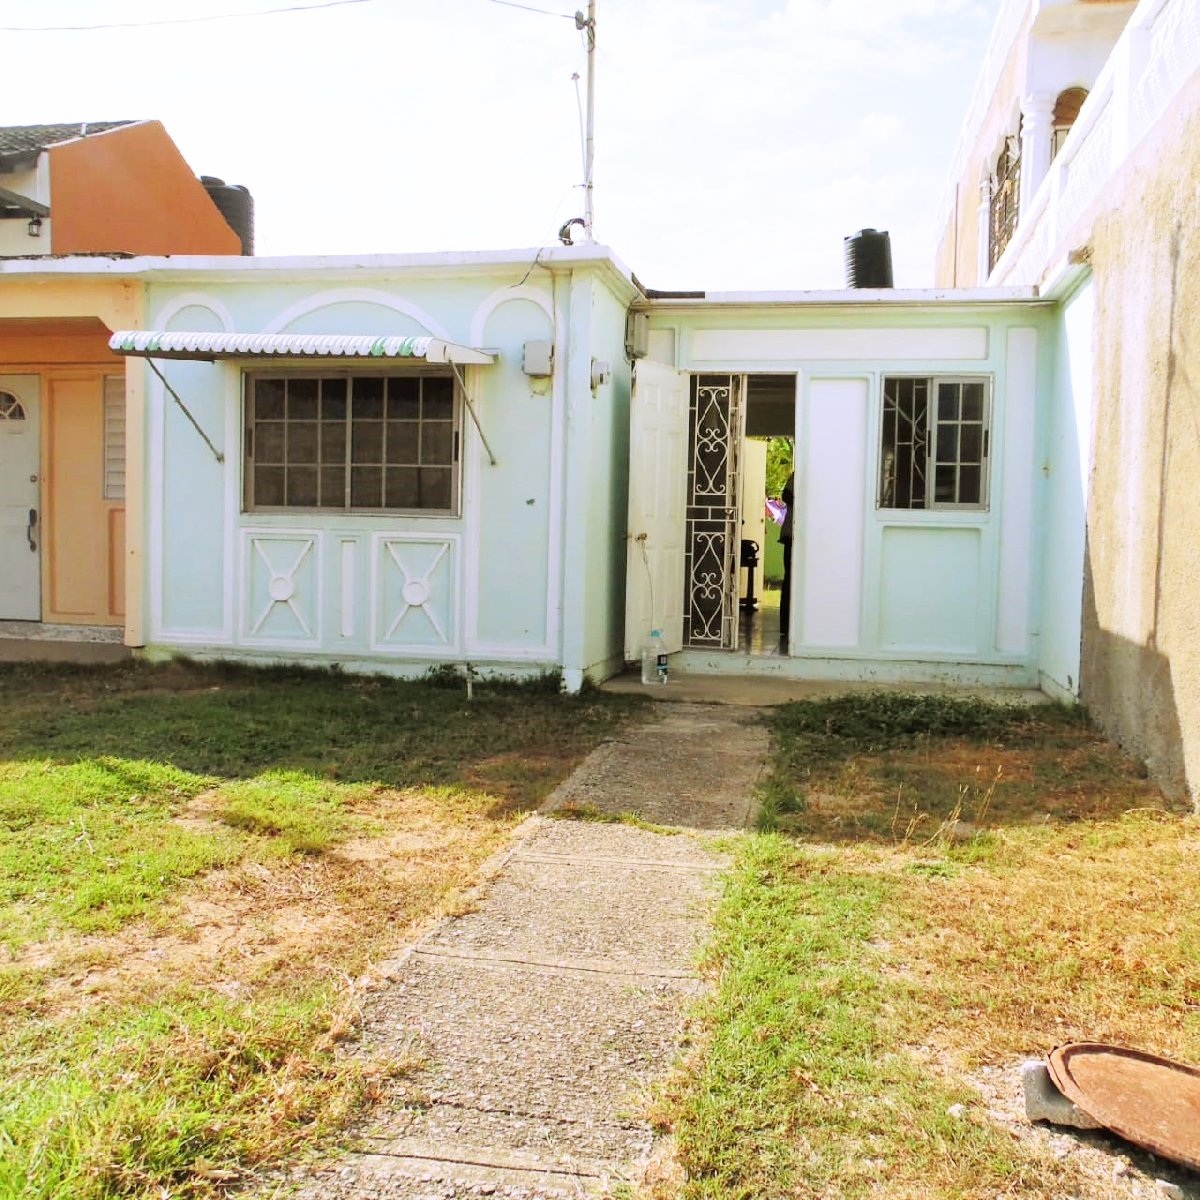 Website For Houses For Rent: 2 Bedroom 1 Bathroom Quad For Sale In Greater Portmore St